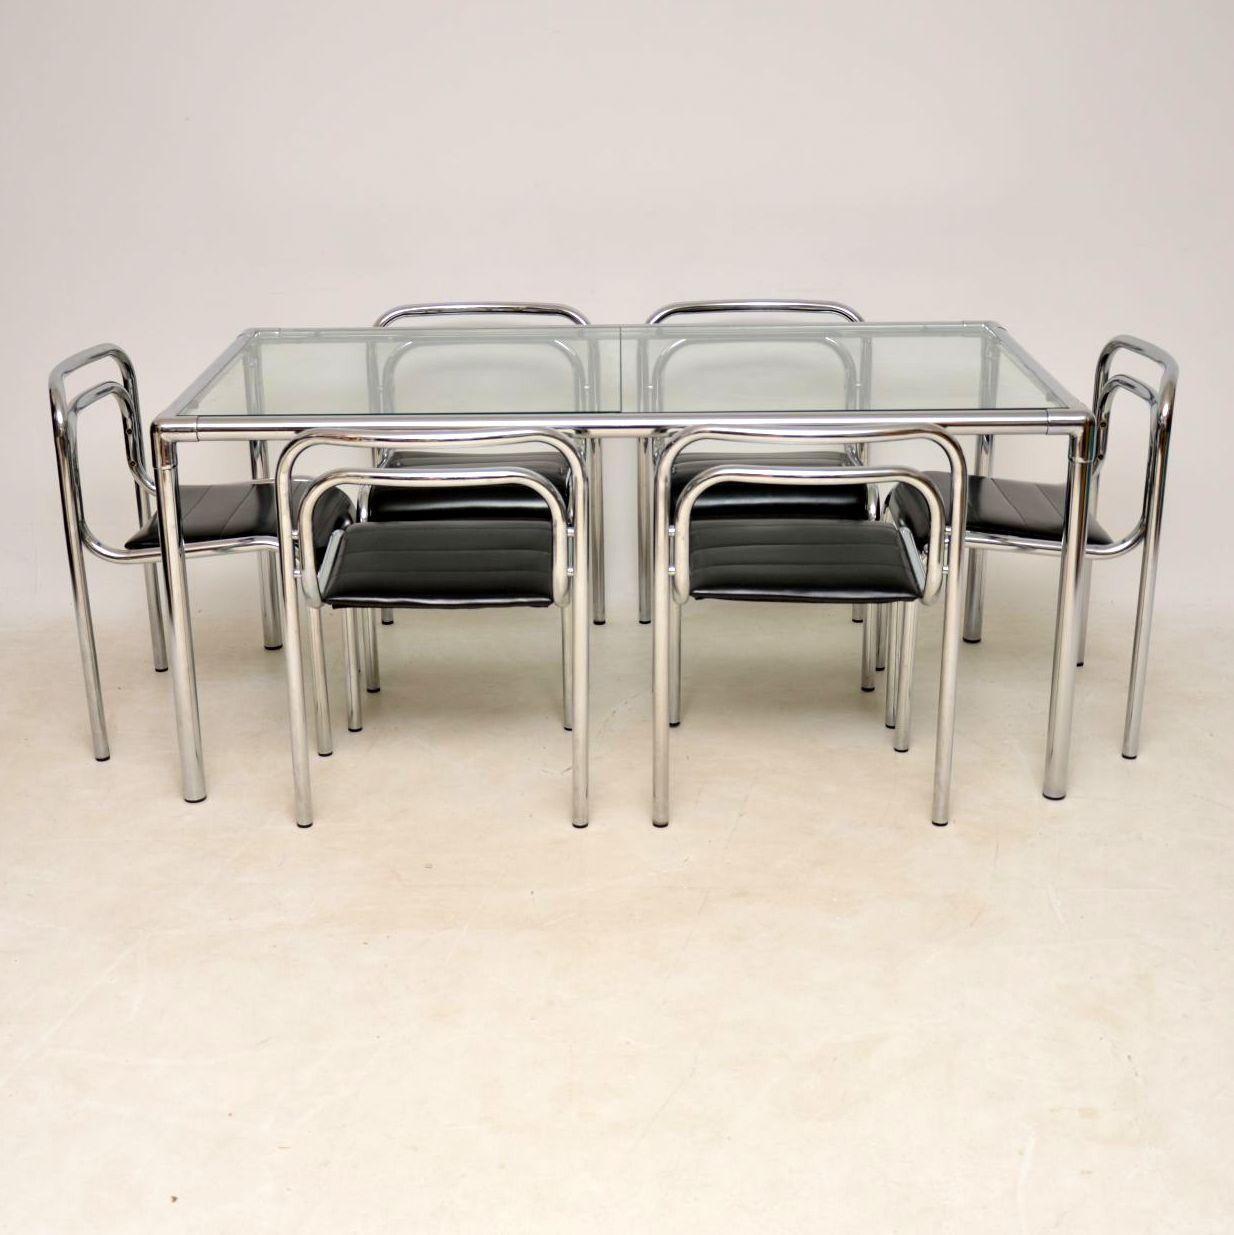 Incroyable 1960s Vintage Chrome Dining Table And Chairs By Rodney Kinsman For OMK